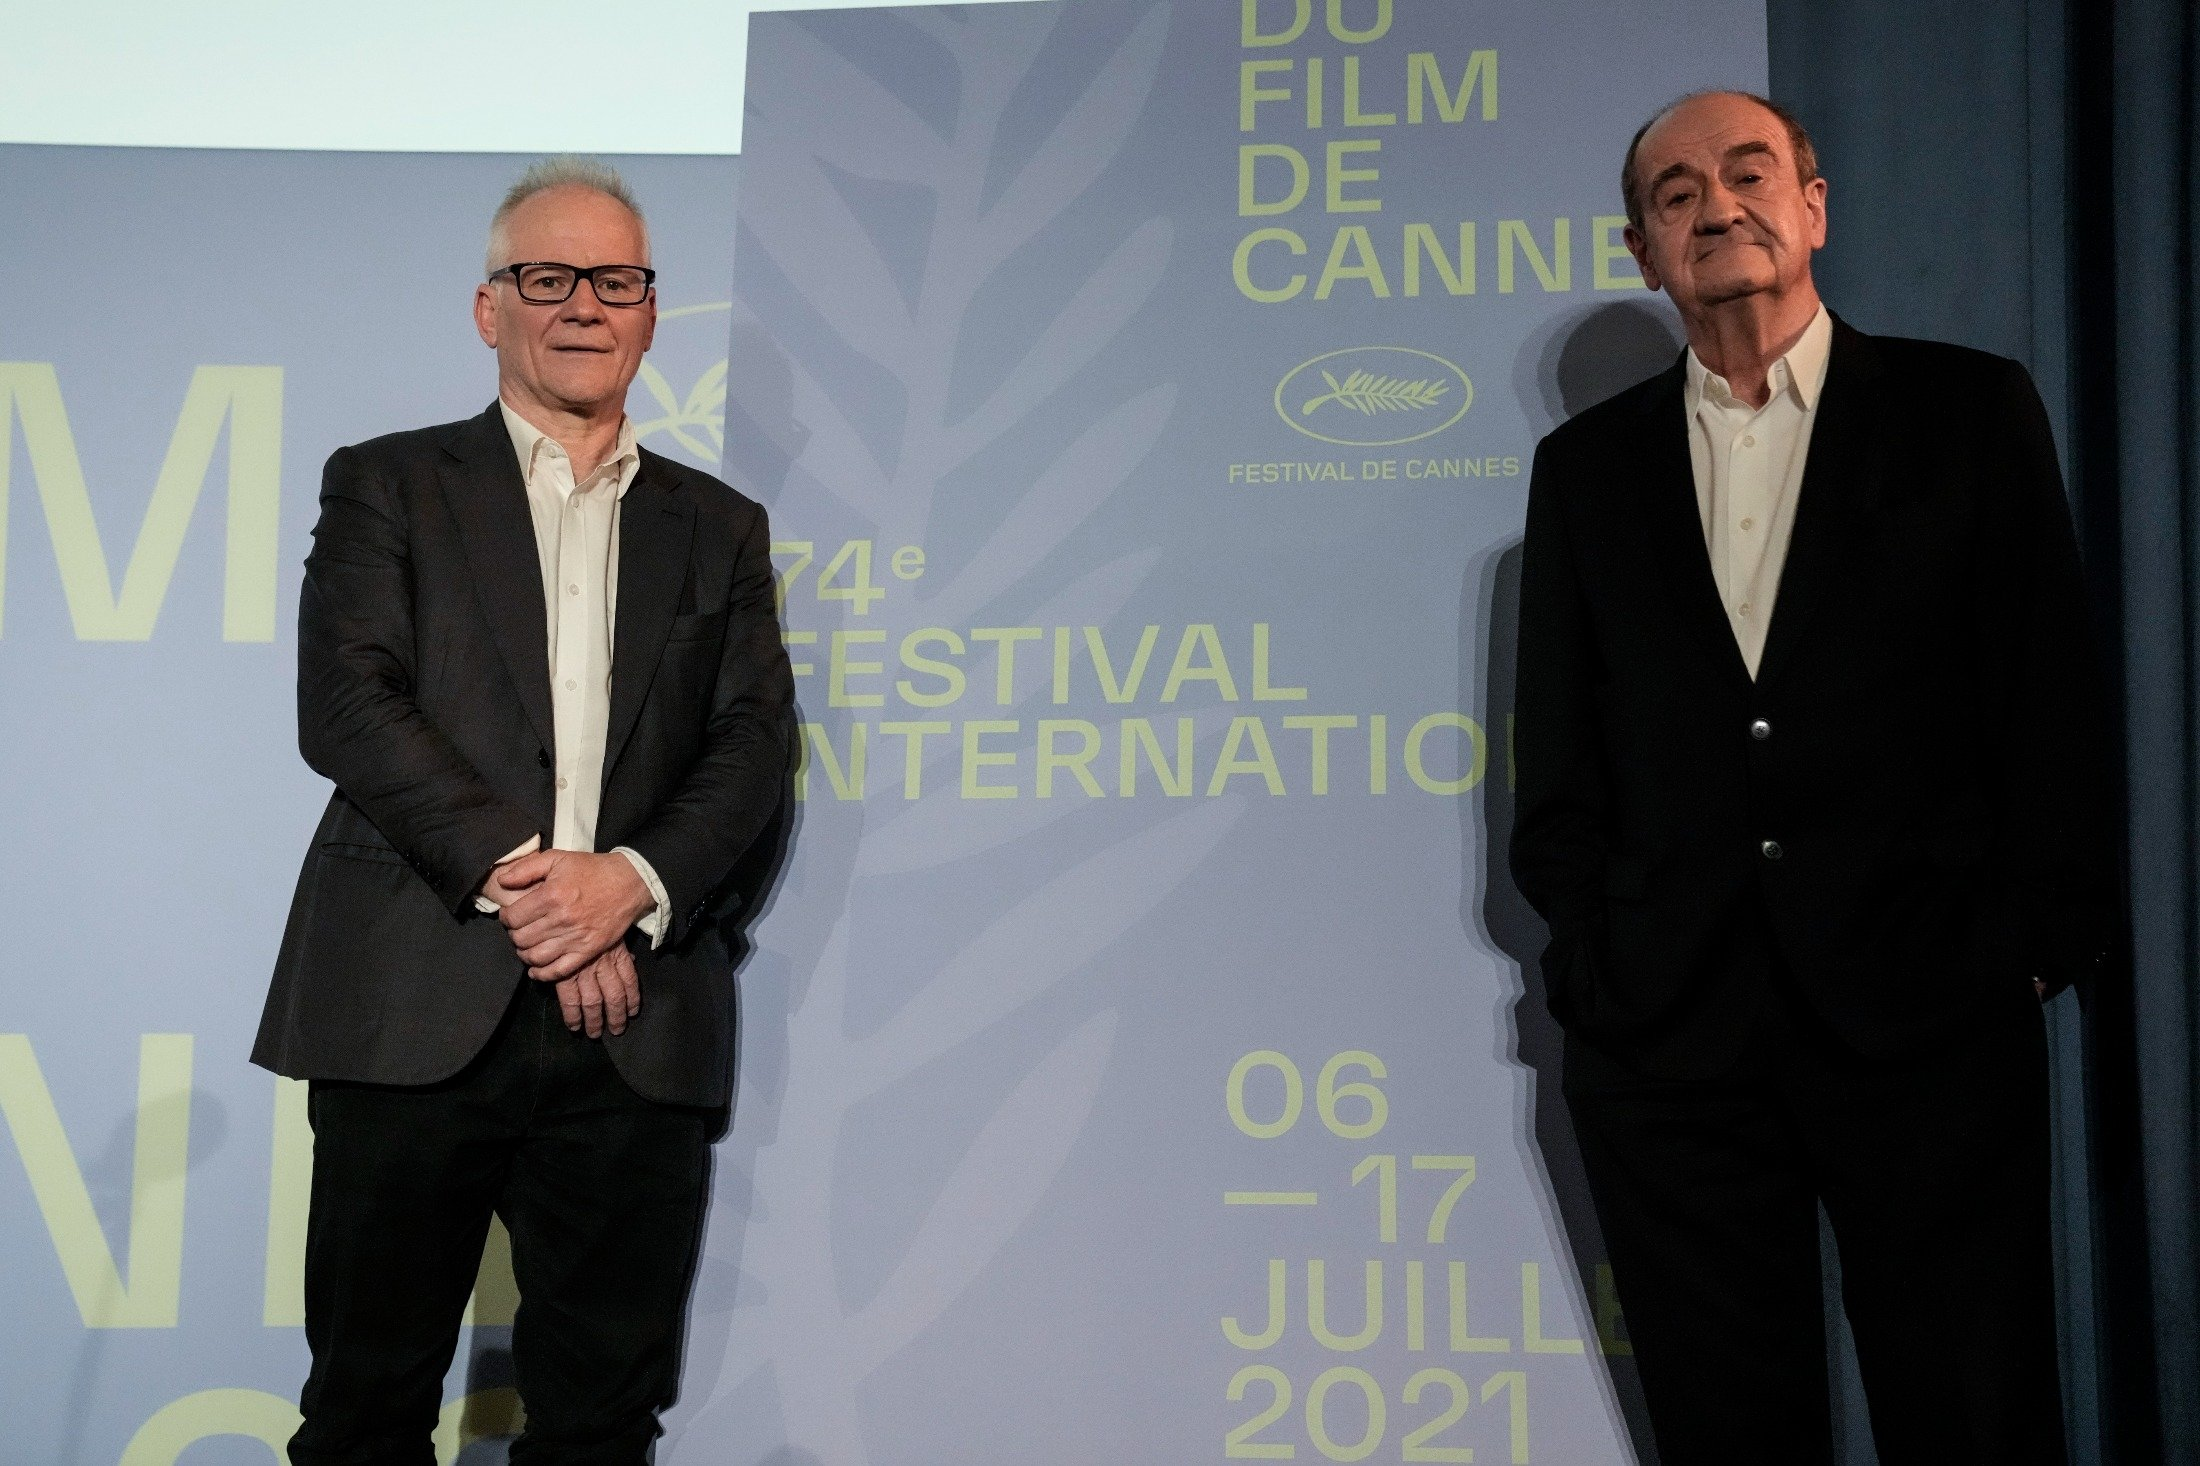 Festival director Thierry Fremaux (L) and Festival president Pierre Lescure during the presentation of the official selection of the 74th International Cannes Film Festival, in Paris, France, June 3, 2021. (AP Photo)